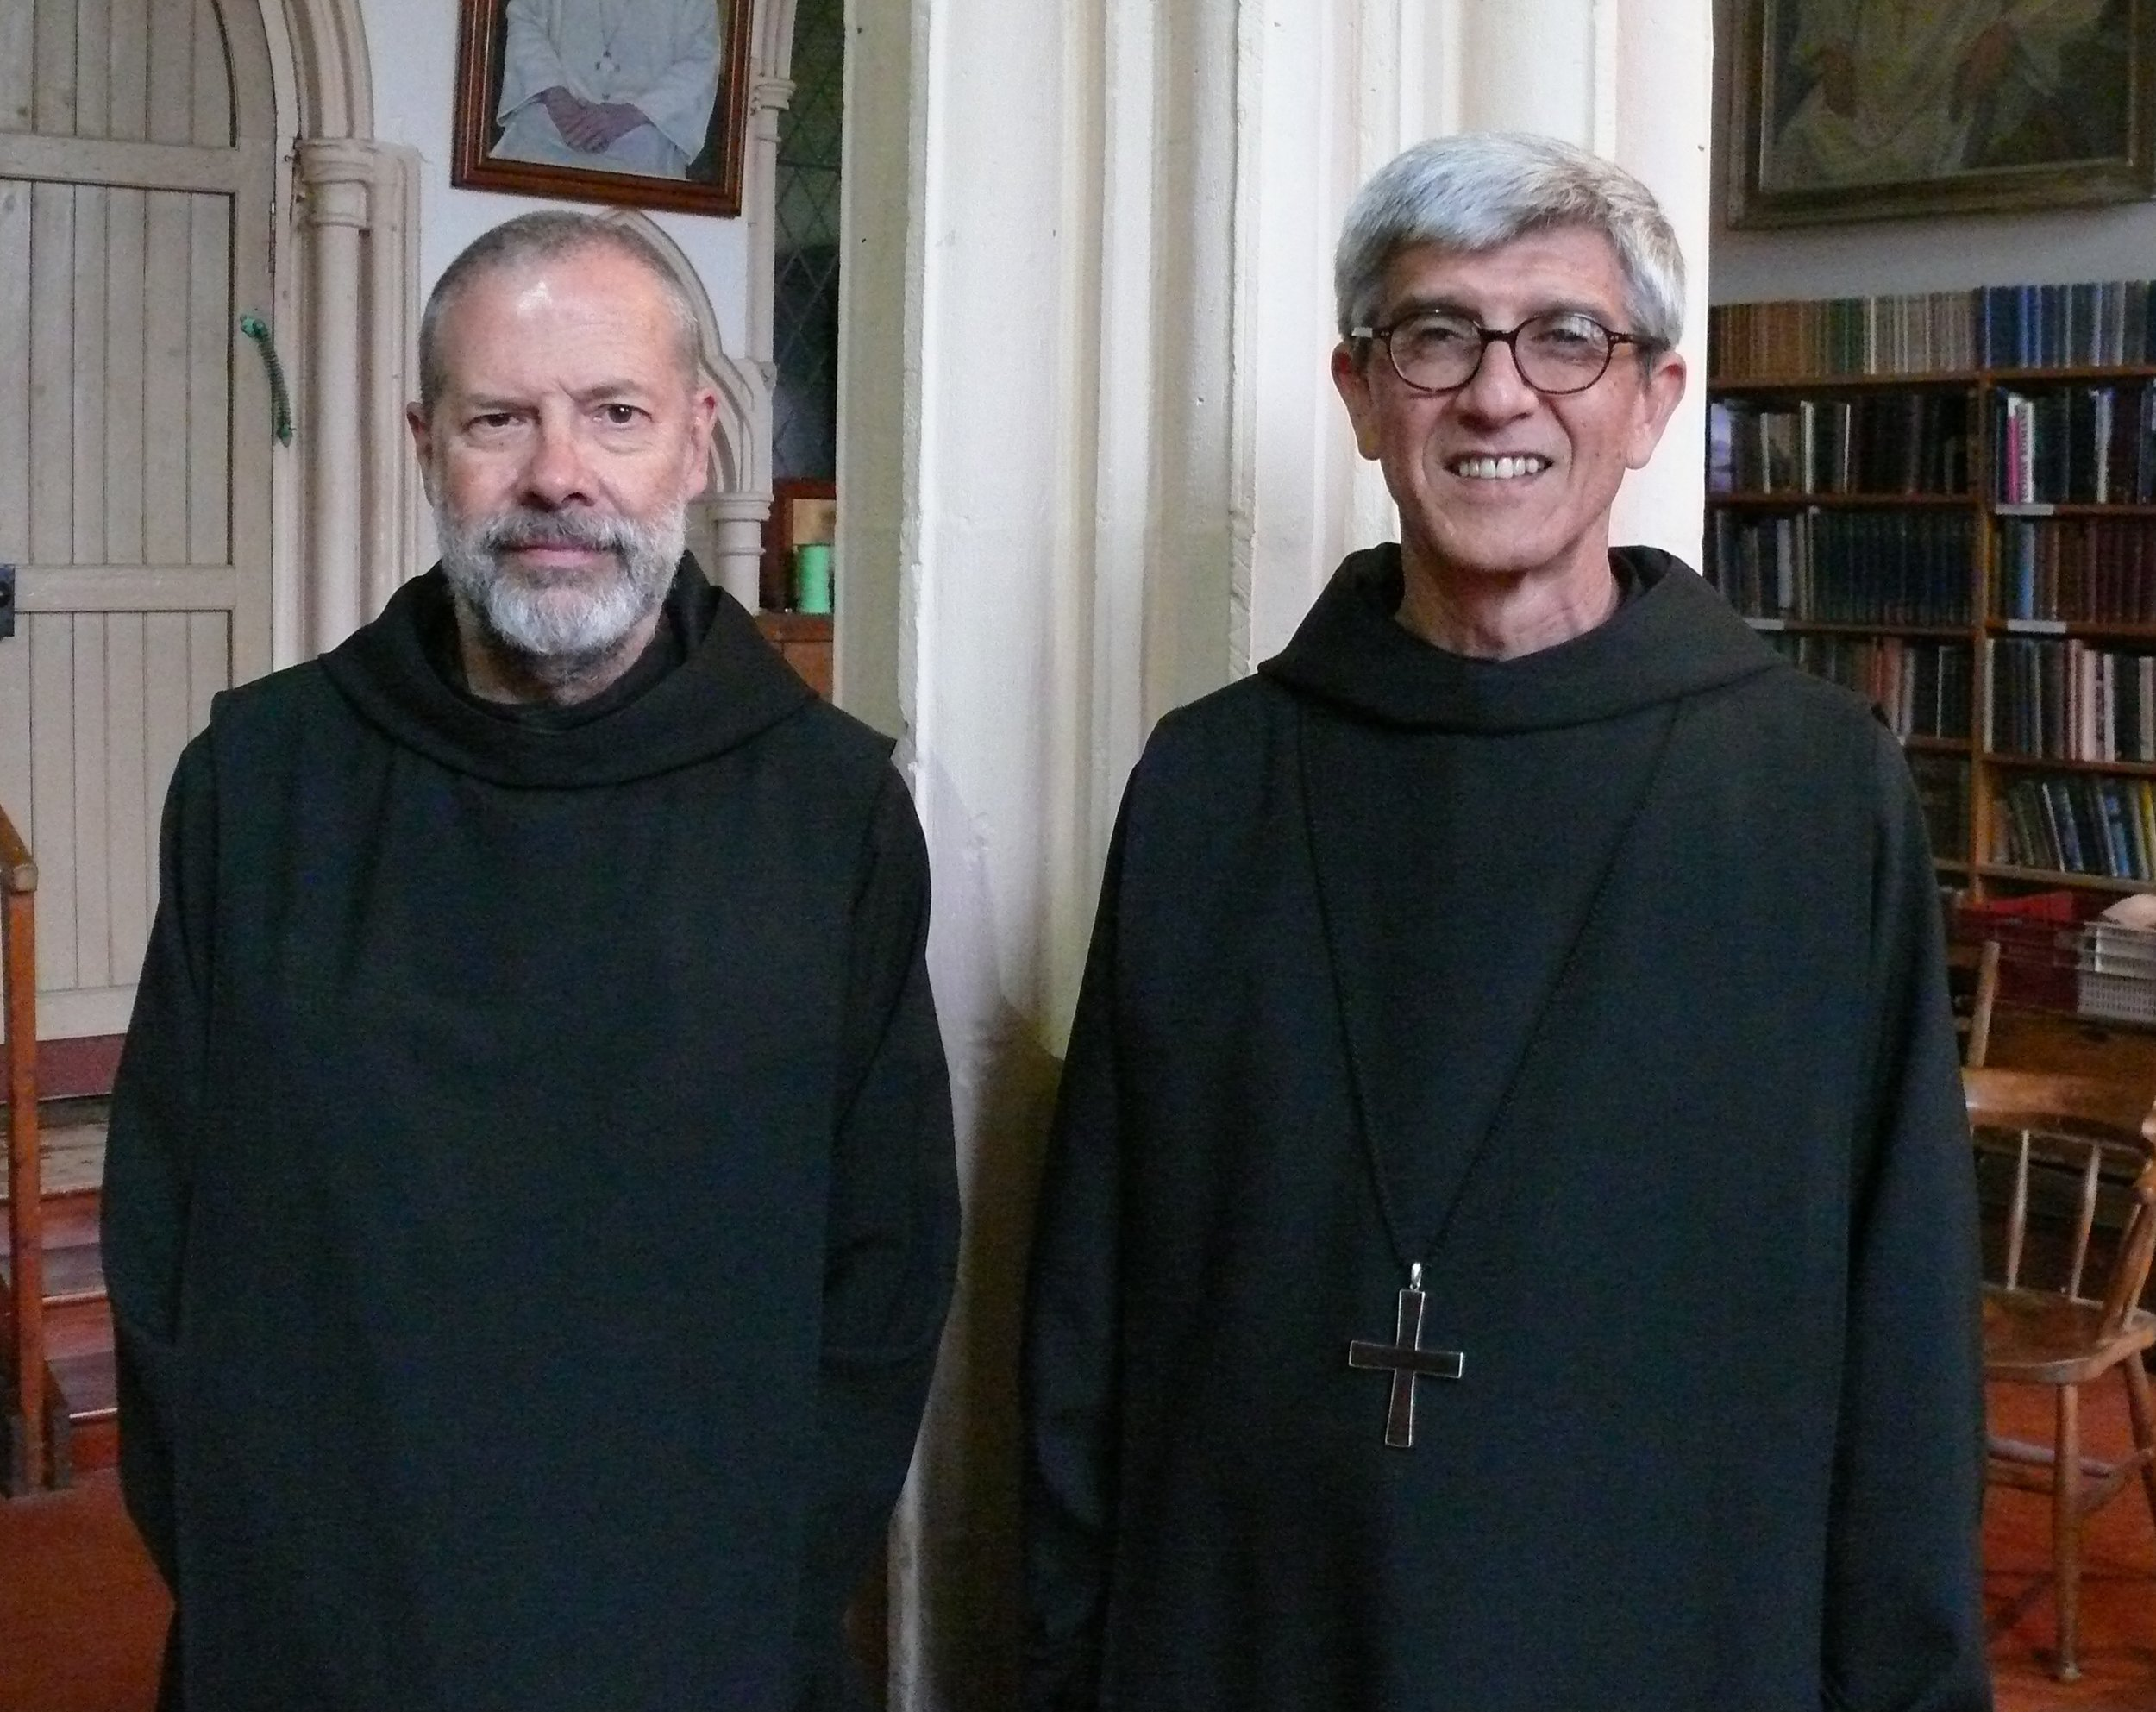 Abbot President of our Subiaco-Cassinese Benedictine Congregation, Abbot Guillermo Arboleda, and Dom Christian Leisy, a monk of Christ-in-the-Desert in New Mexico, USA